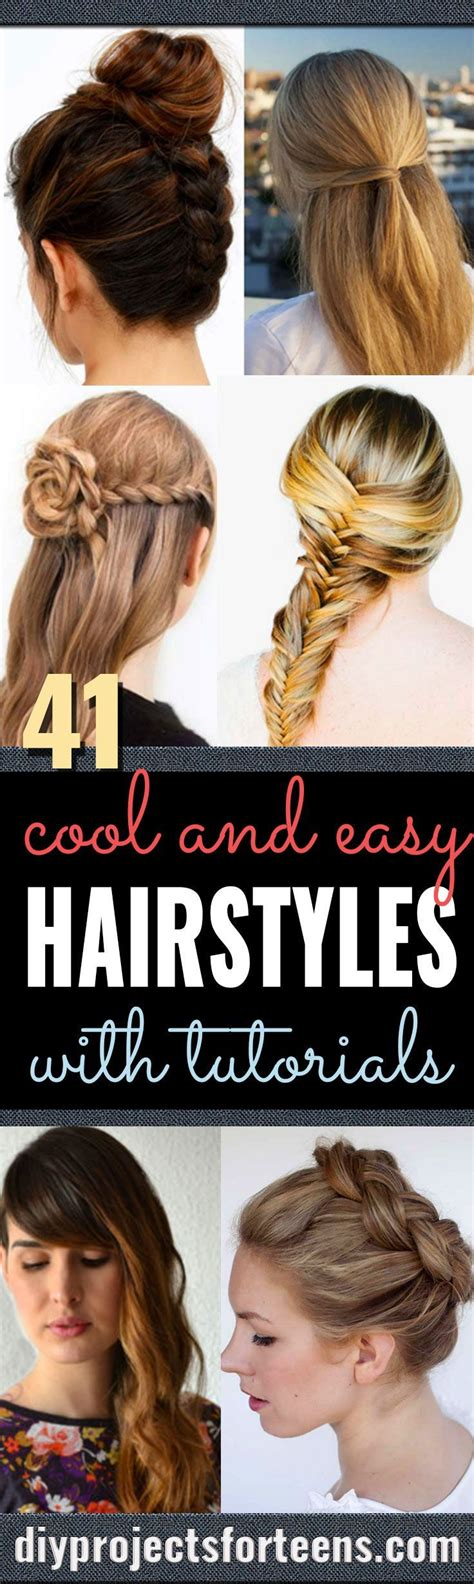 easy hairstyles for school trip easy step by step hairstyles for school cool and easy diy hairstyles and easy ideas